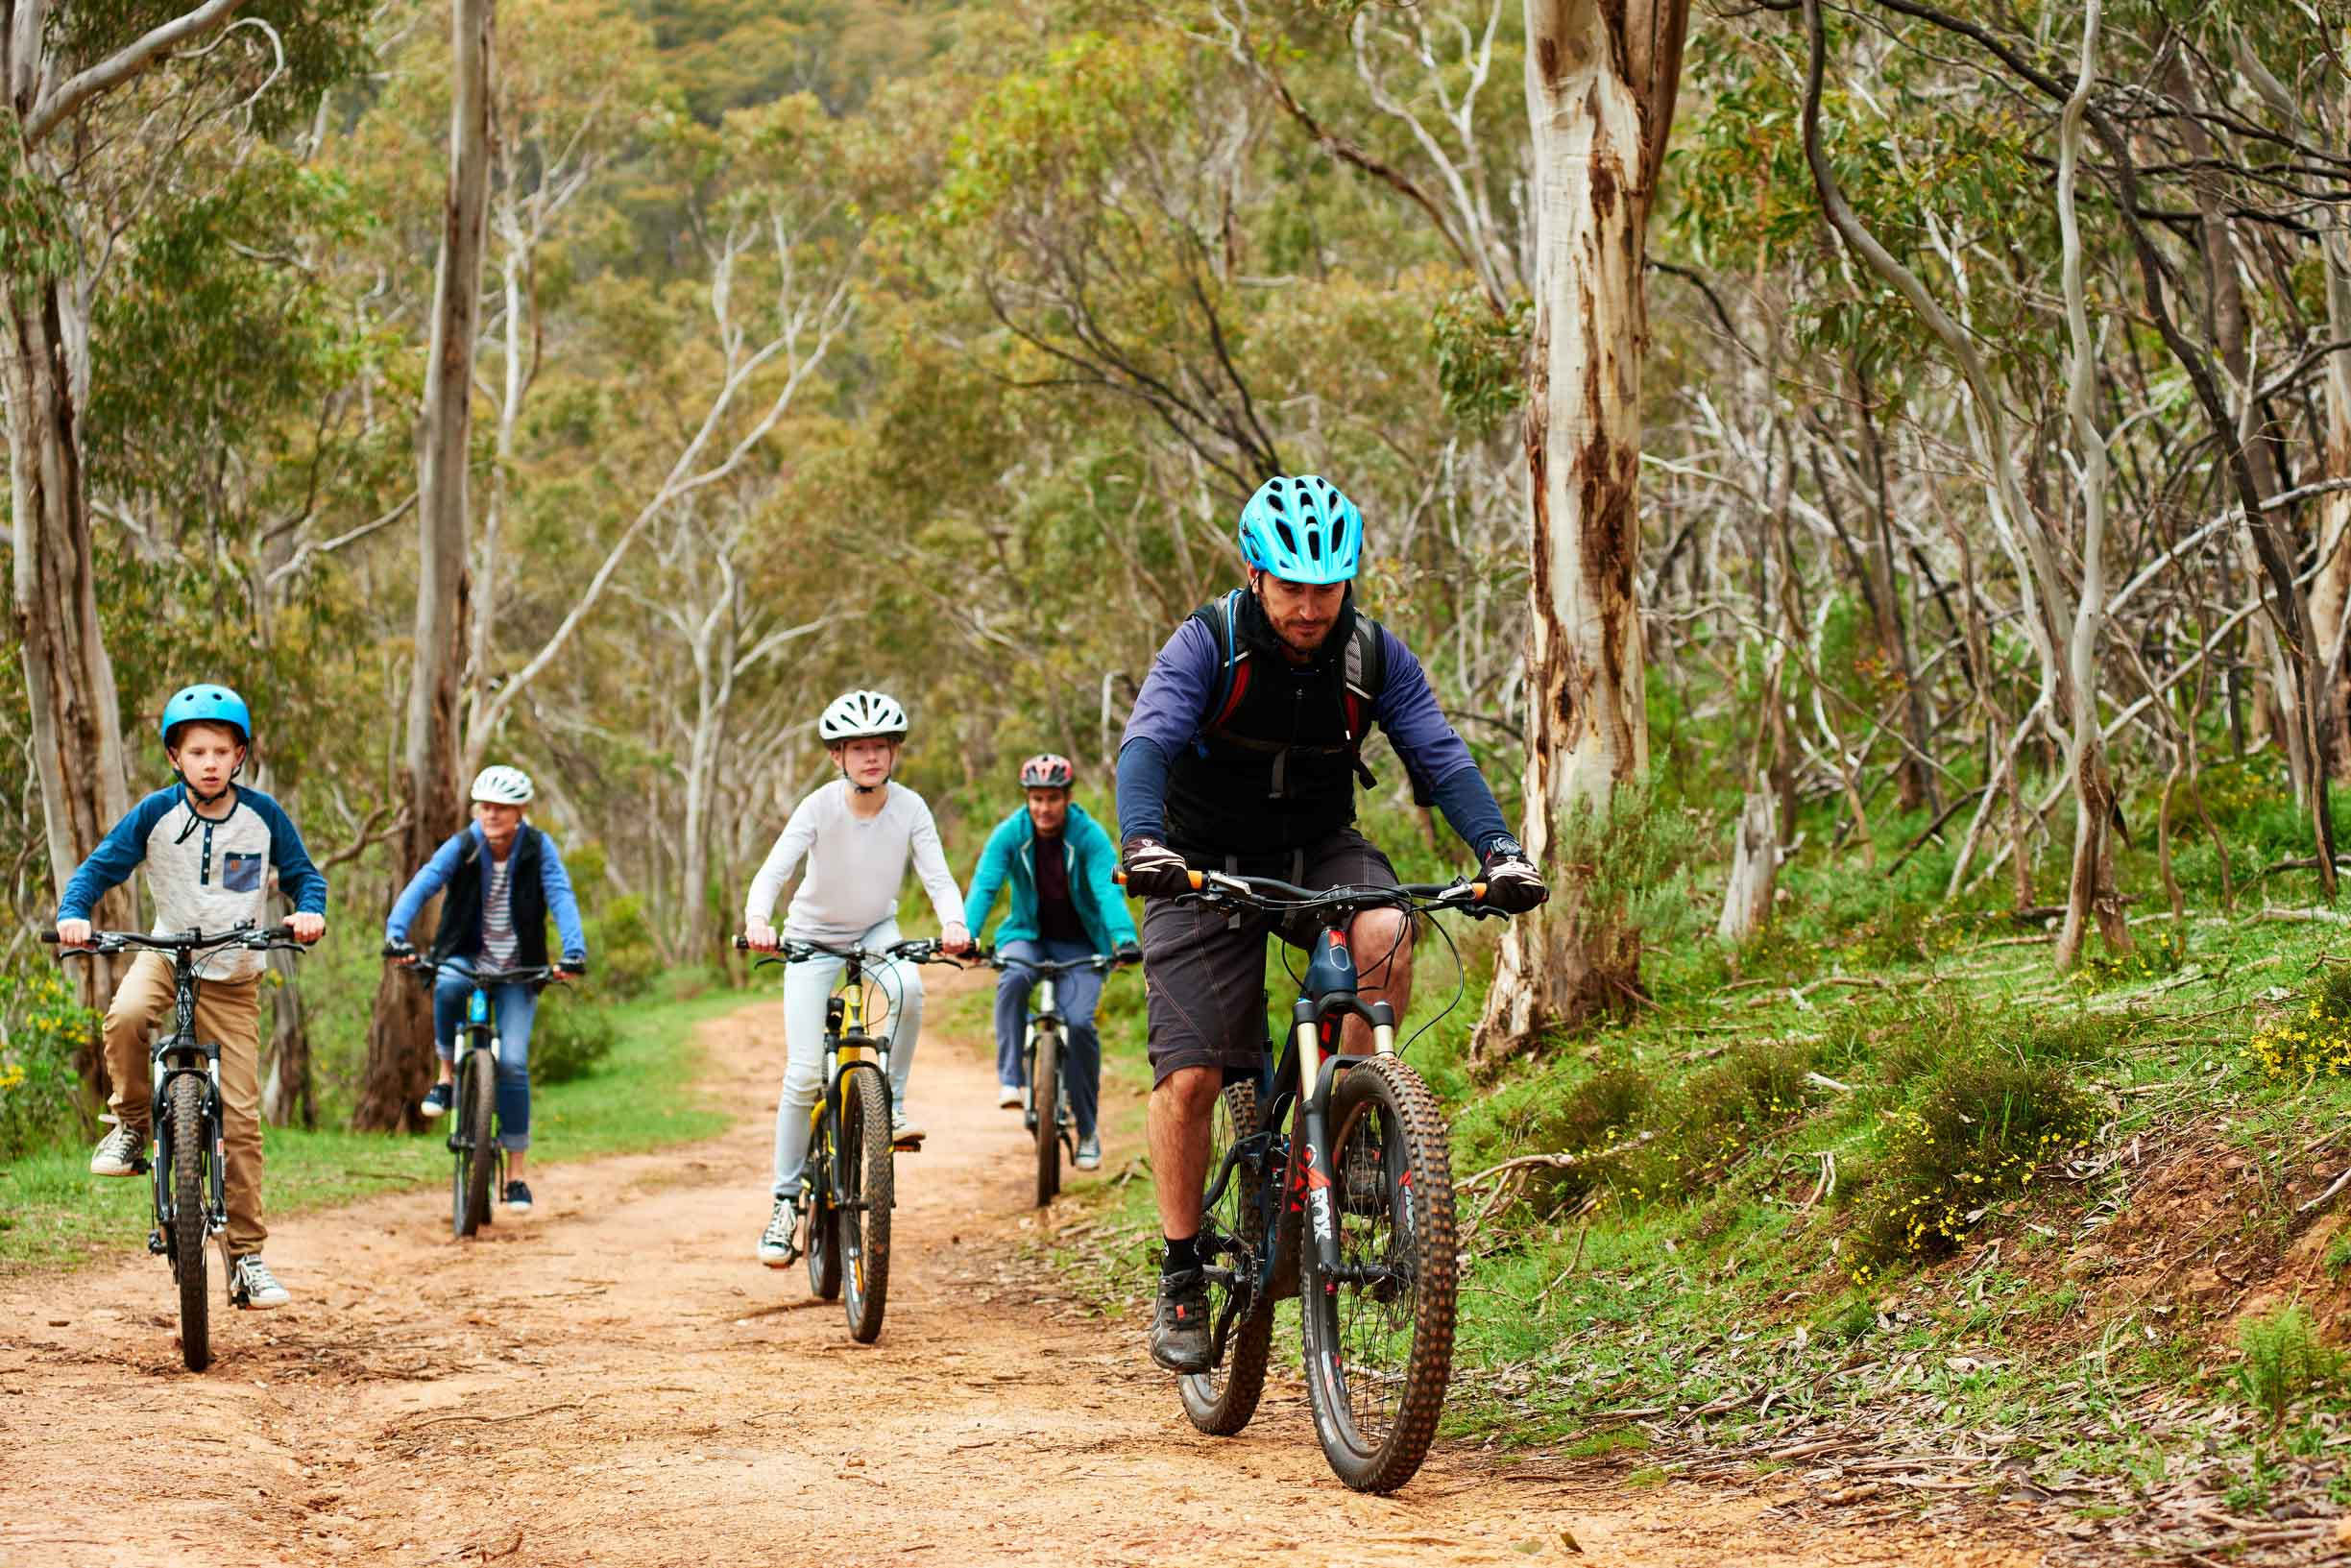 Cycling in Cleland Conservation Park